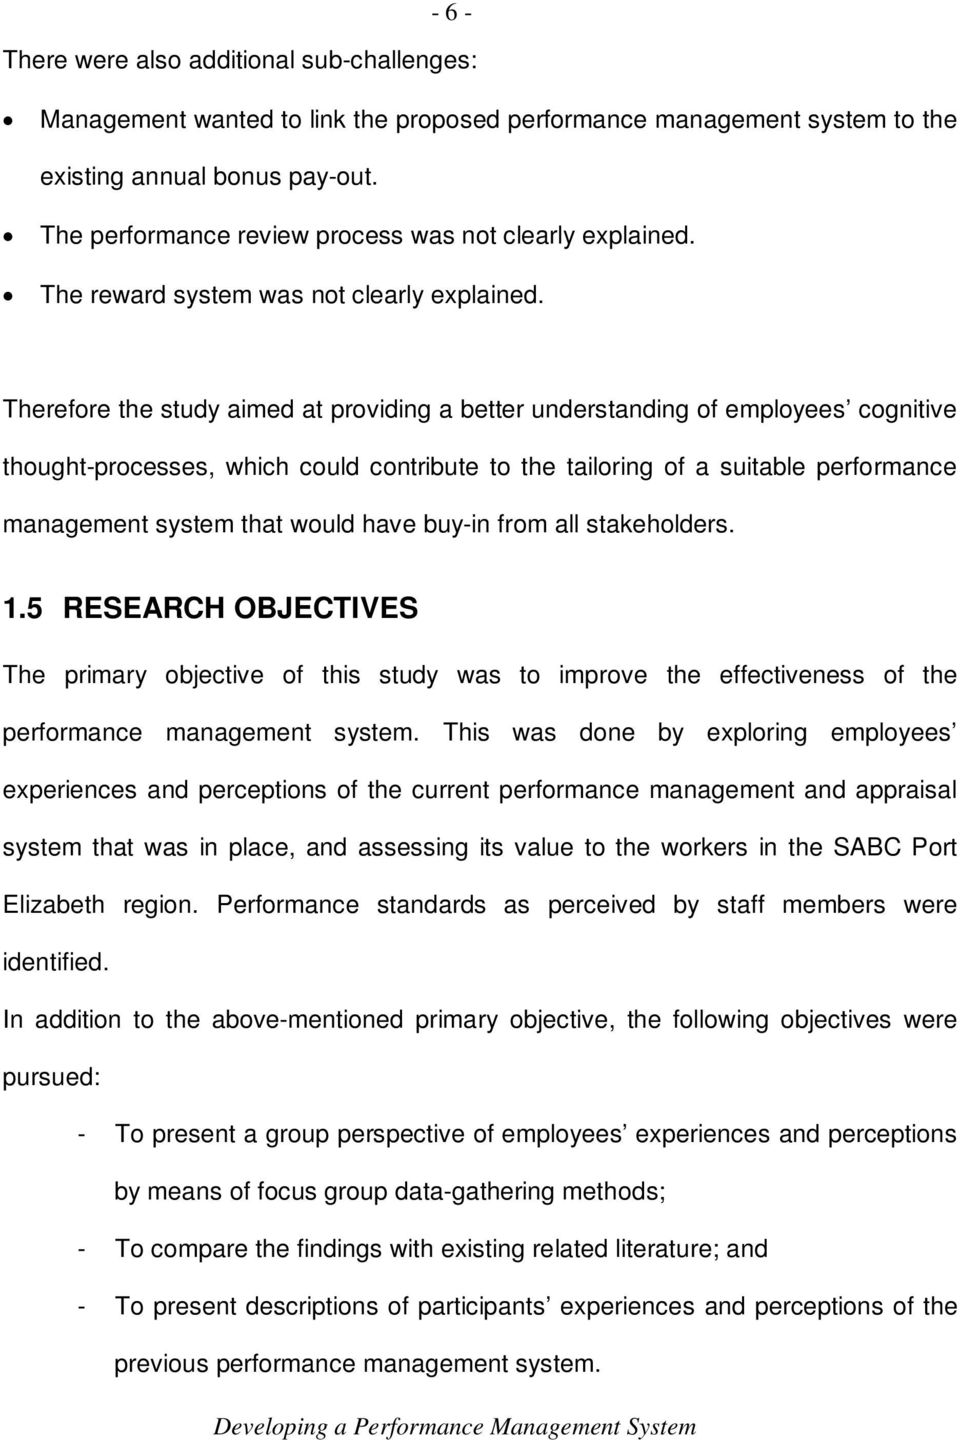 Therefore the study aimed at providing a better understanding of employees cognitive thought-processes, which could contribute to the tailoring of a suitable performance management system that would